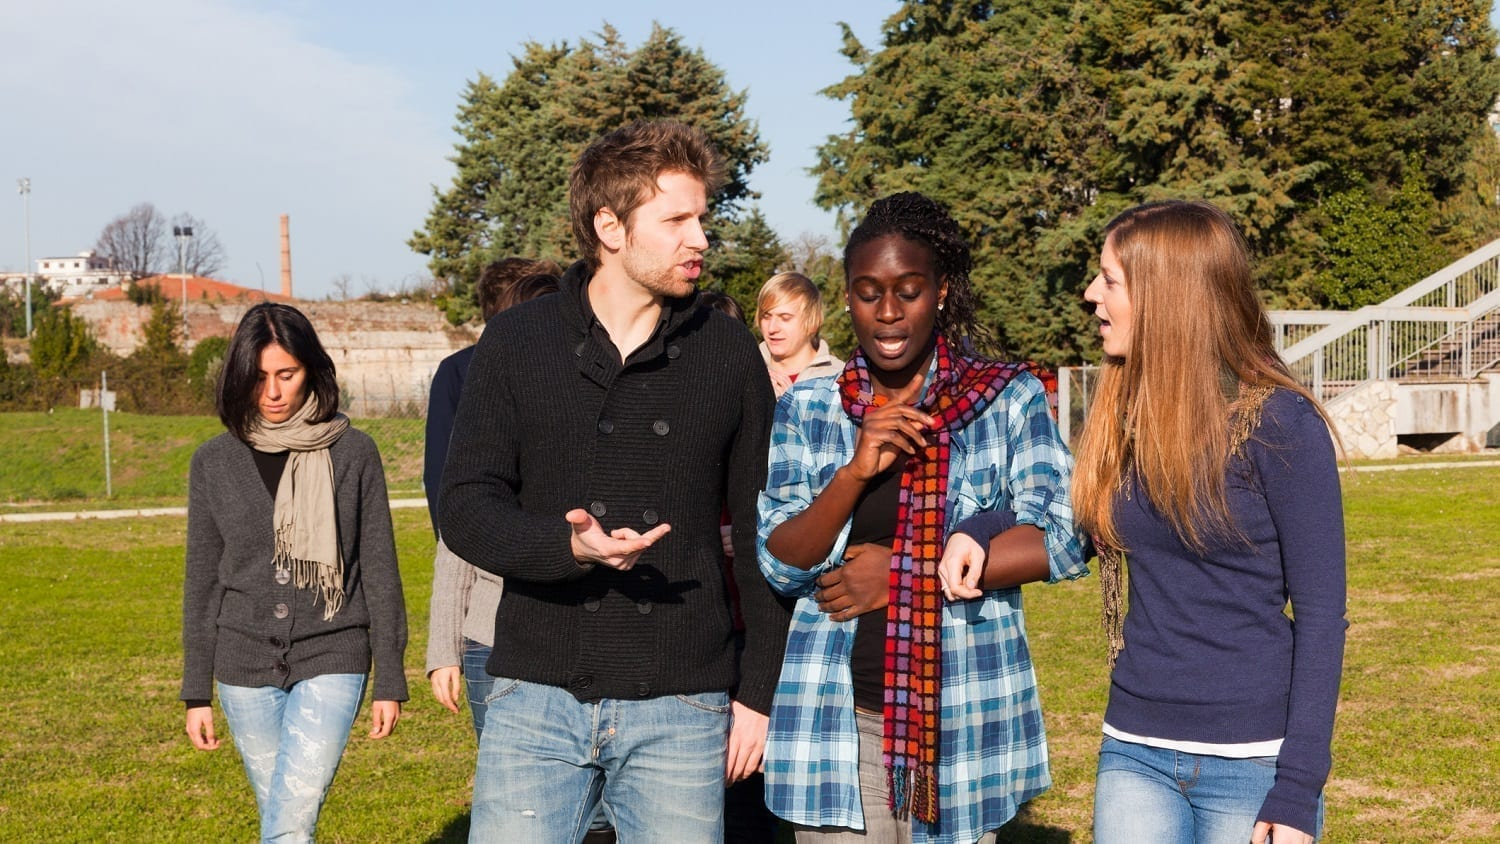 Lively outdoor discussion amoung young people: Photo 17823673 © William87 | Dreamstime.com